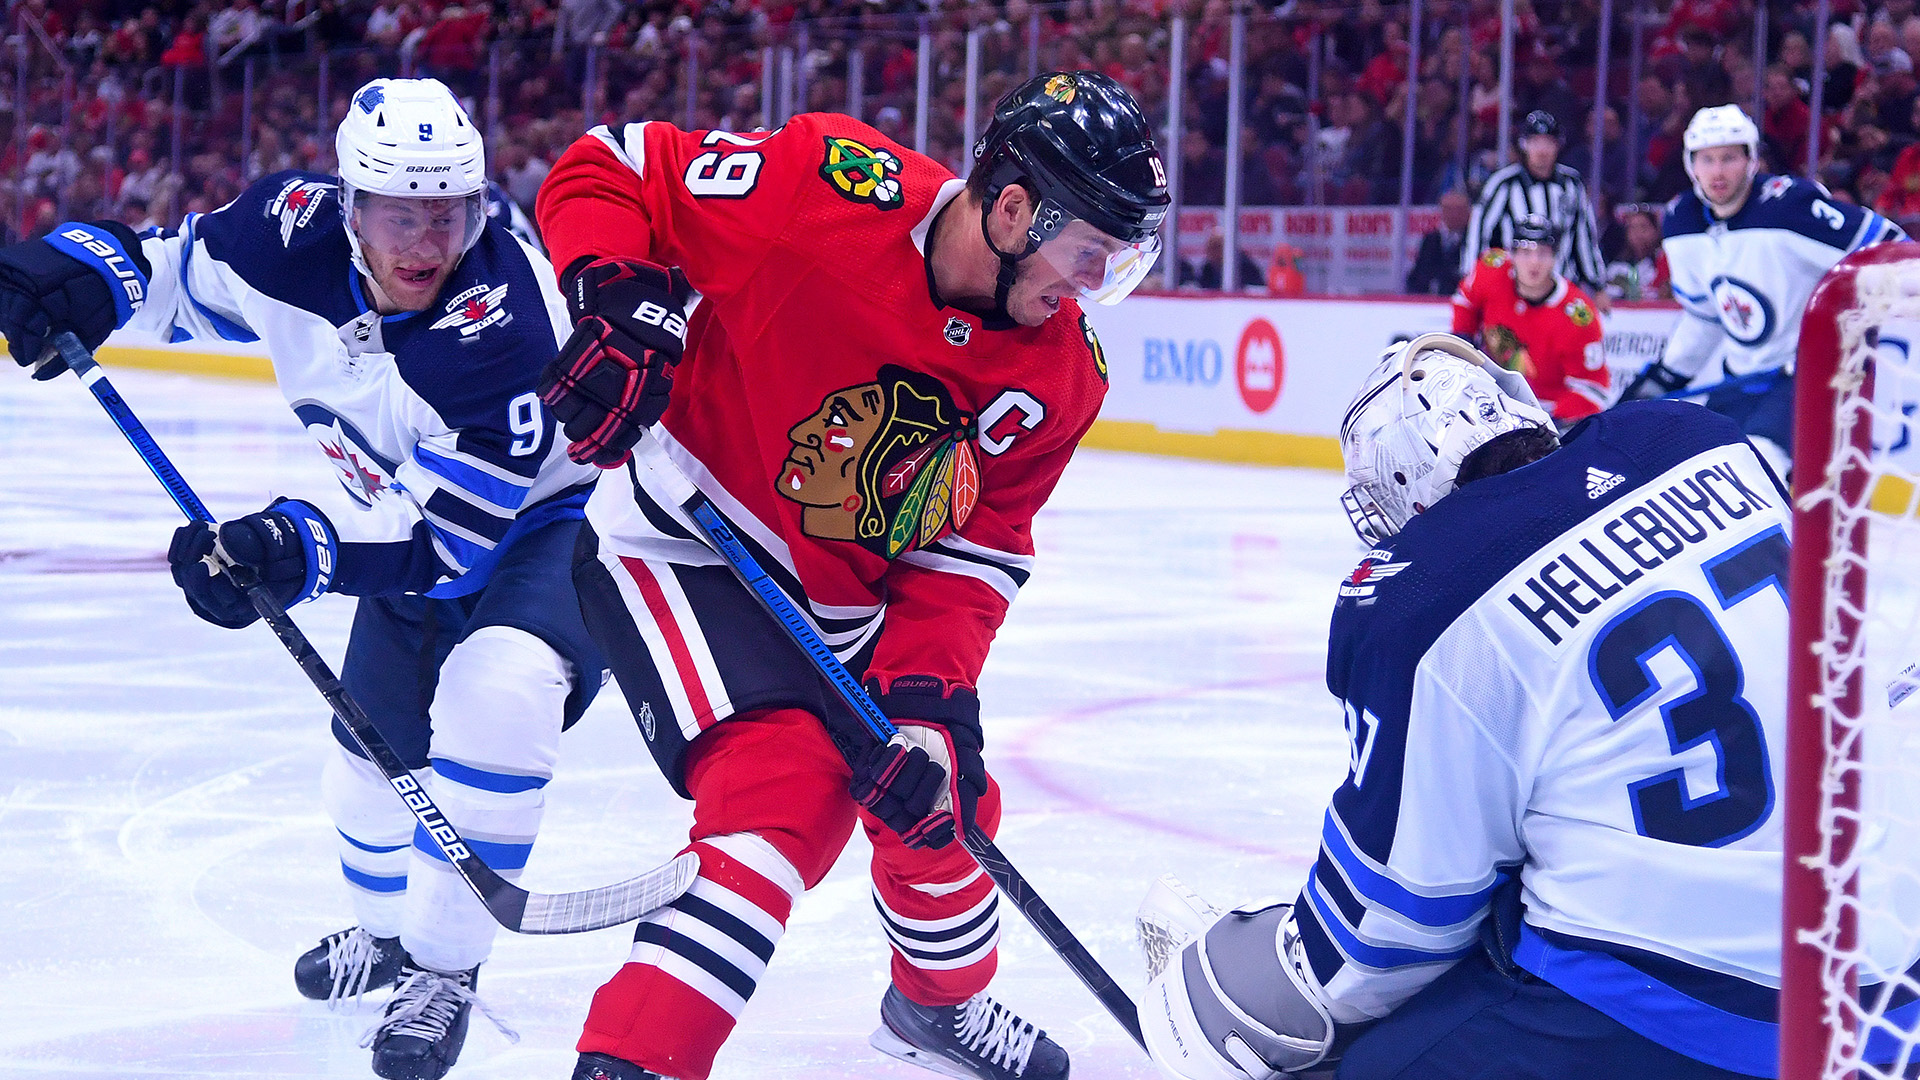 Jonathan Toews on early struggles: 'We're not going to freak out'